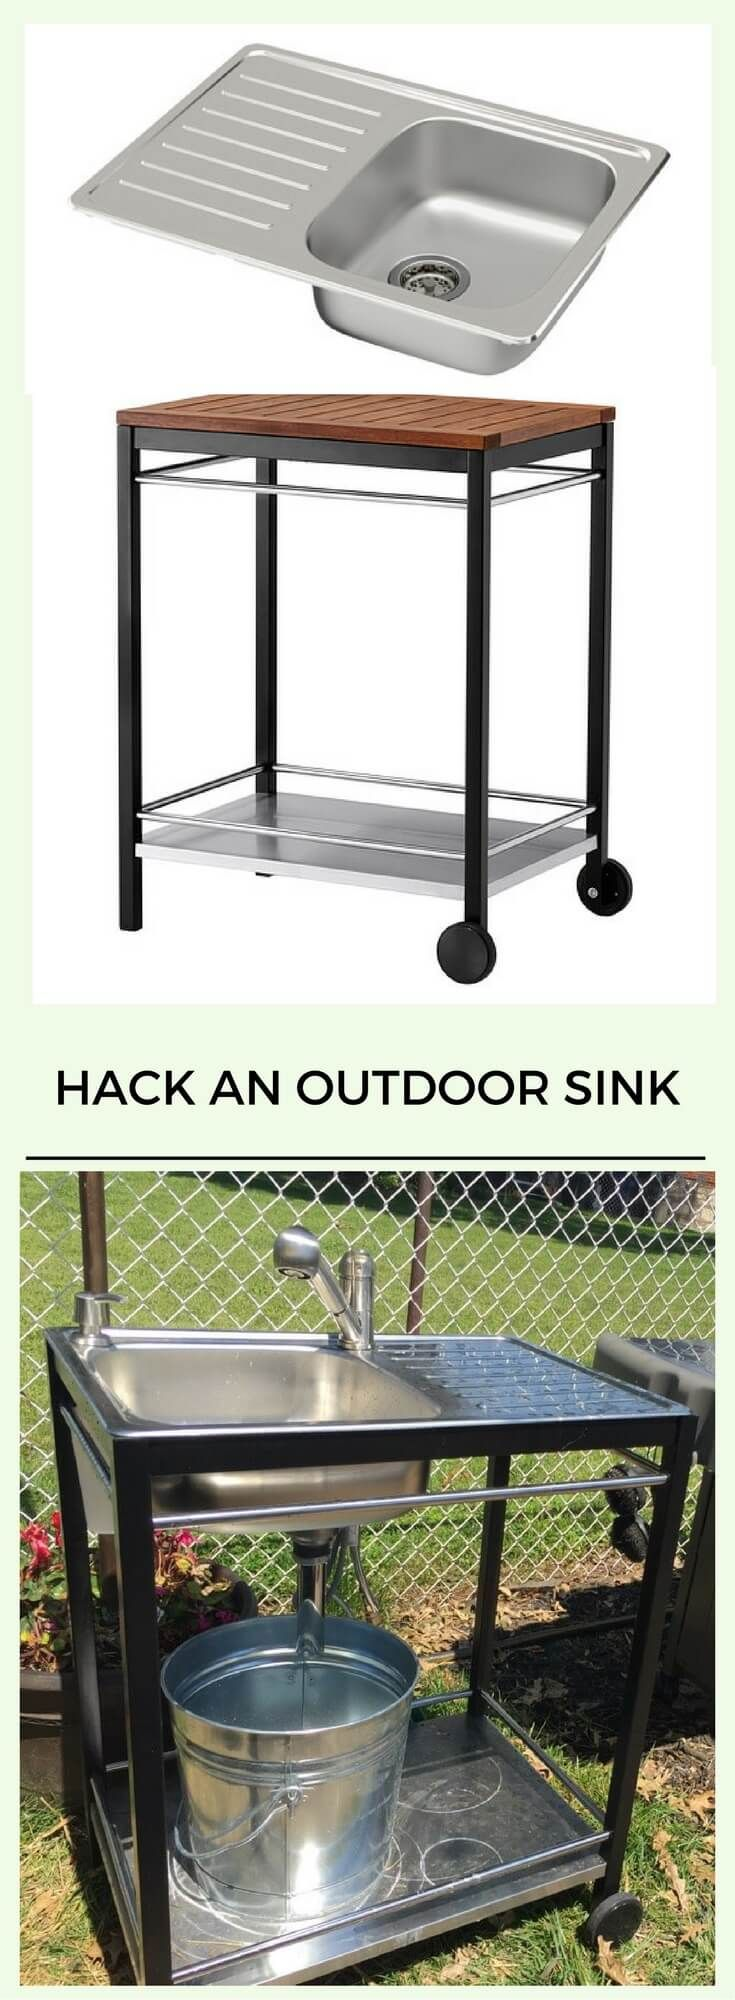 Ikea Outdoor Küche Hack Outdoor Sink A Perfect Summer Project Ikea Hacks Outdoor